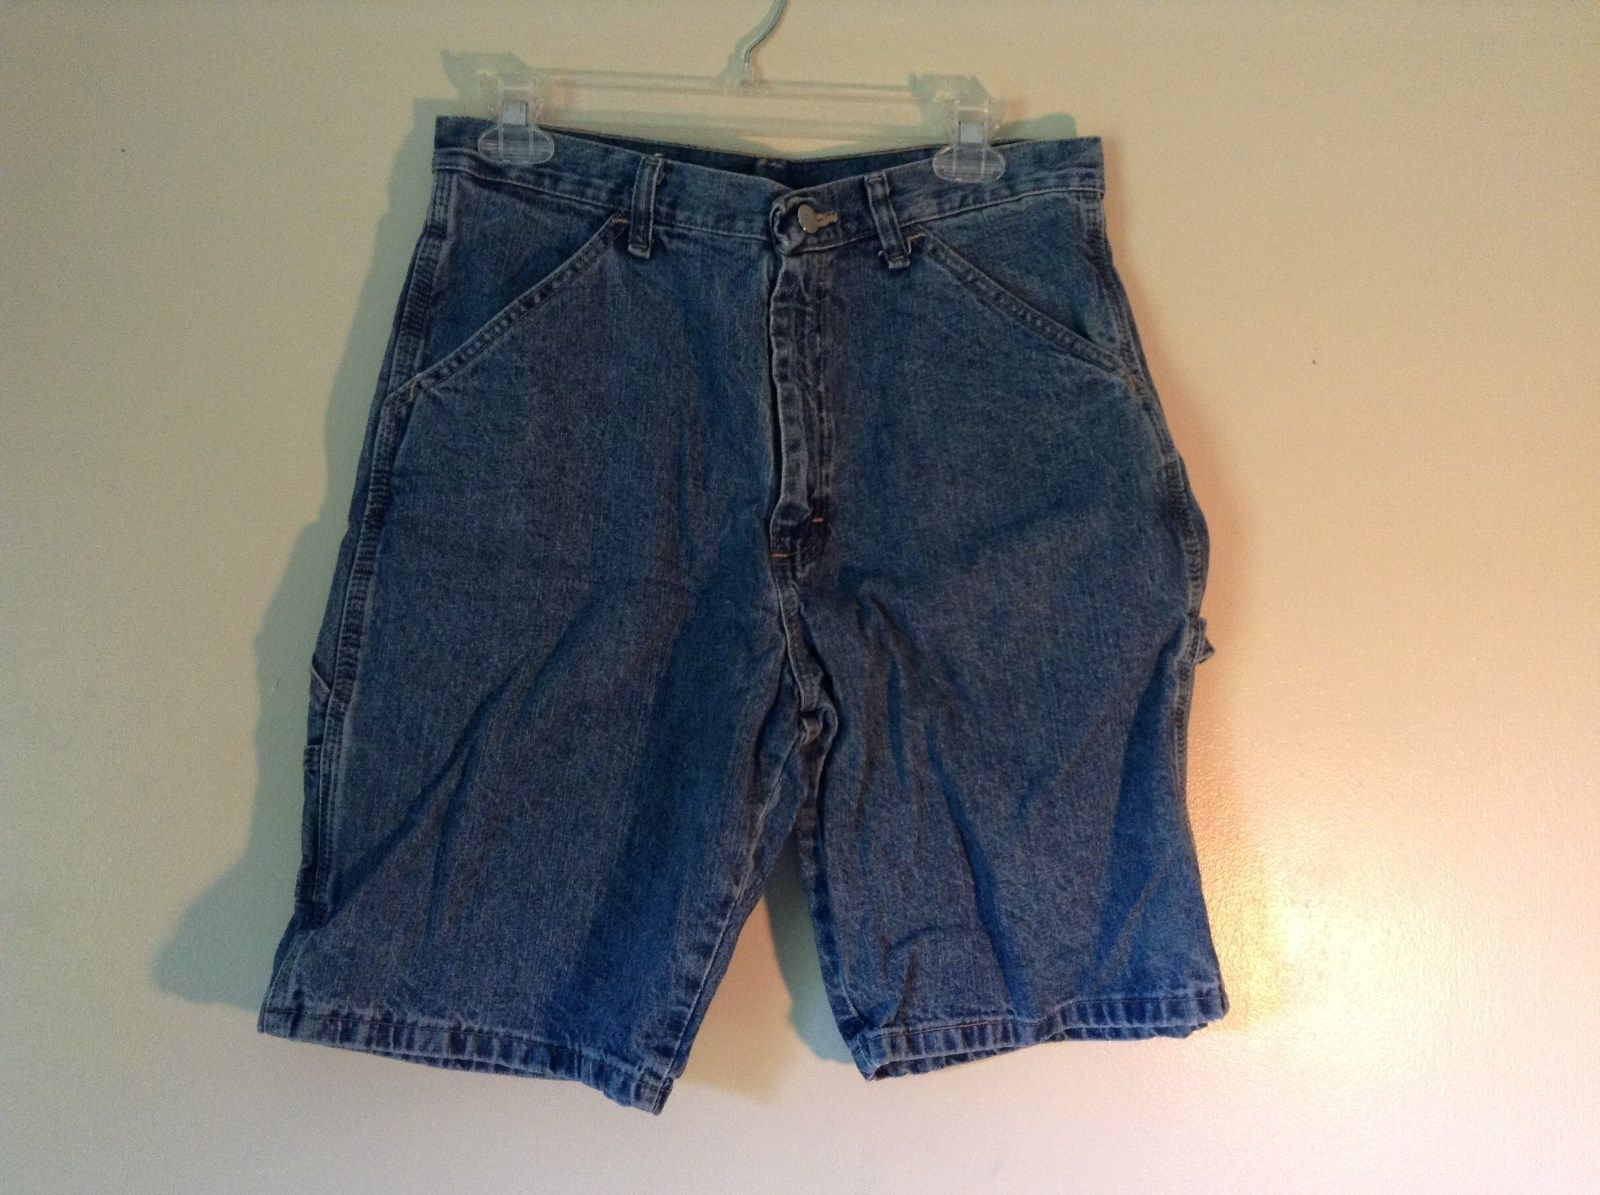 Wrangler Blue Jean Shorts Size 30 Waist Button and Zipper Closure Pockets